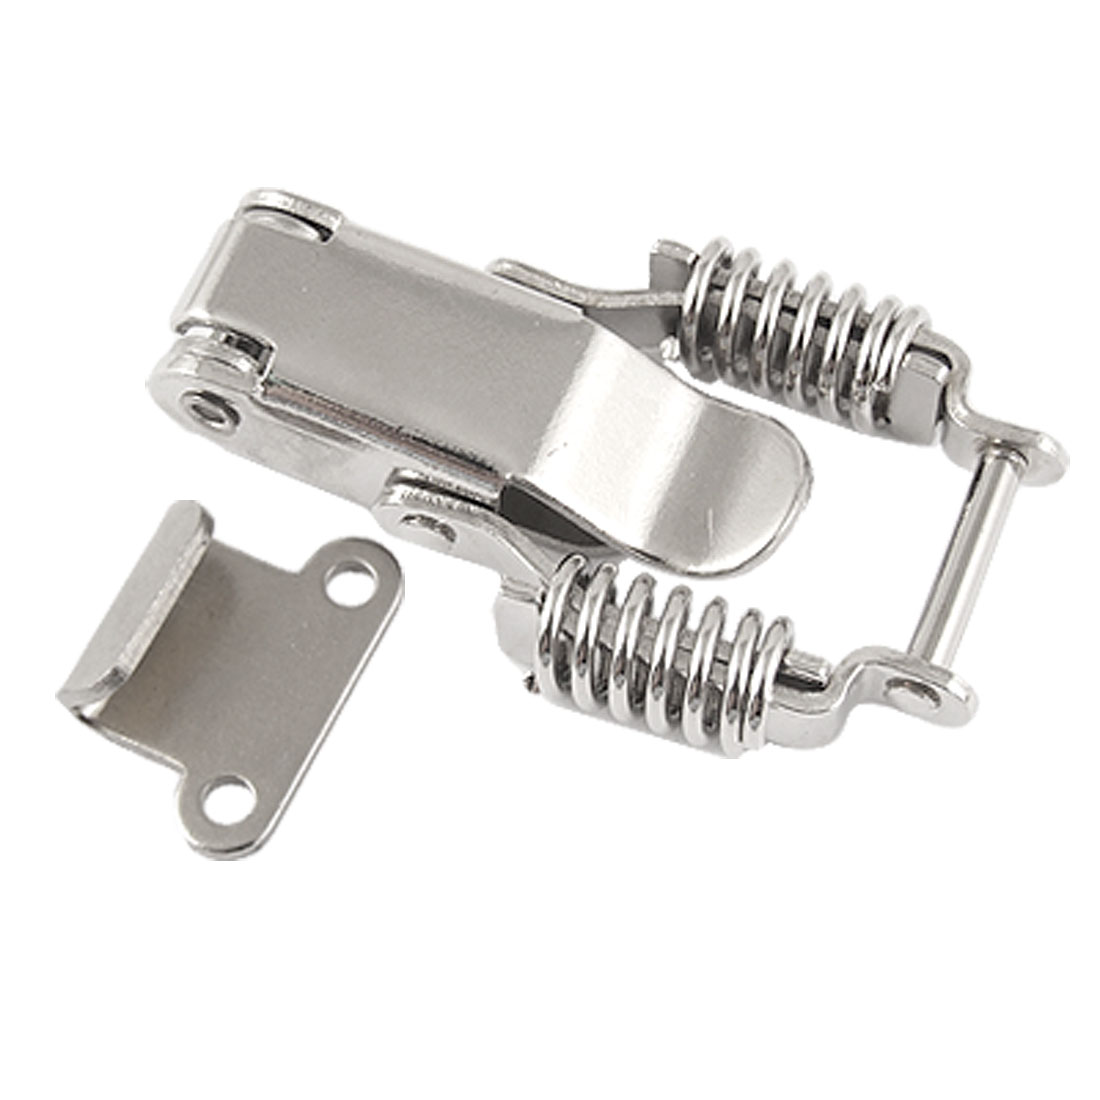 Pack of 2 Uxcell a15121800ux0721 255mm 10 Length 2 Sections Ball Bearing Cabinet Drawer Slides 2pcs